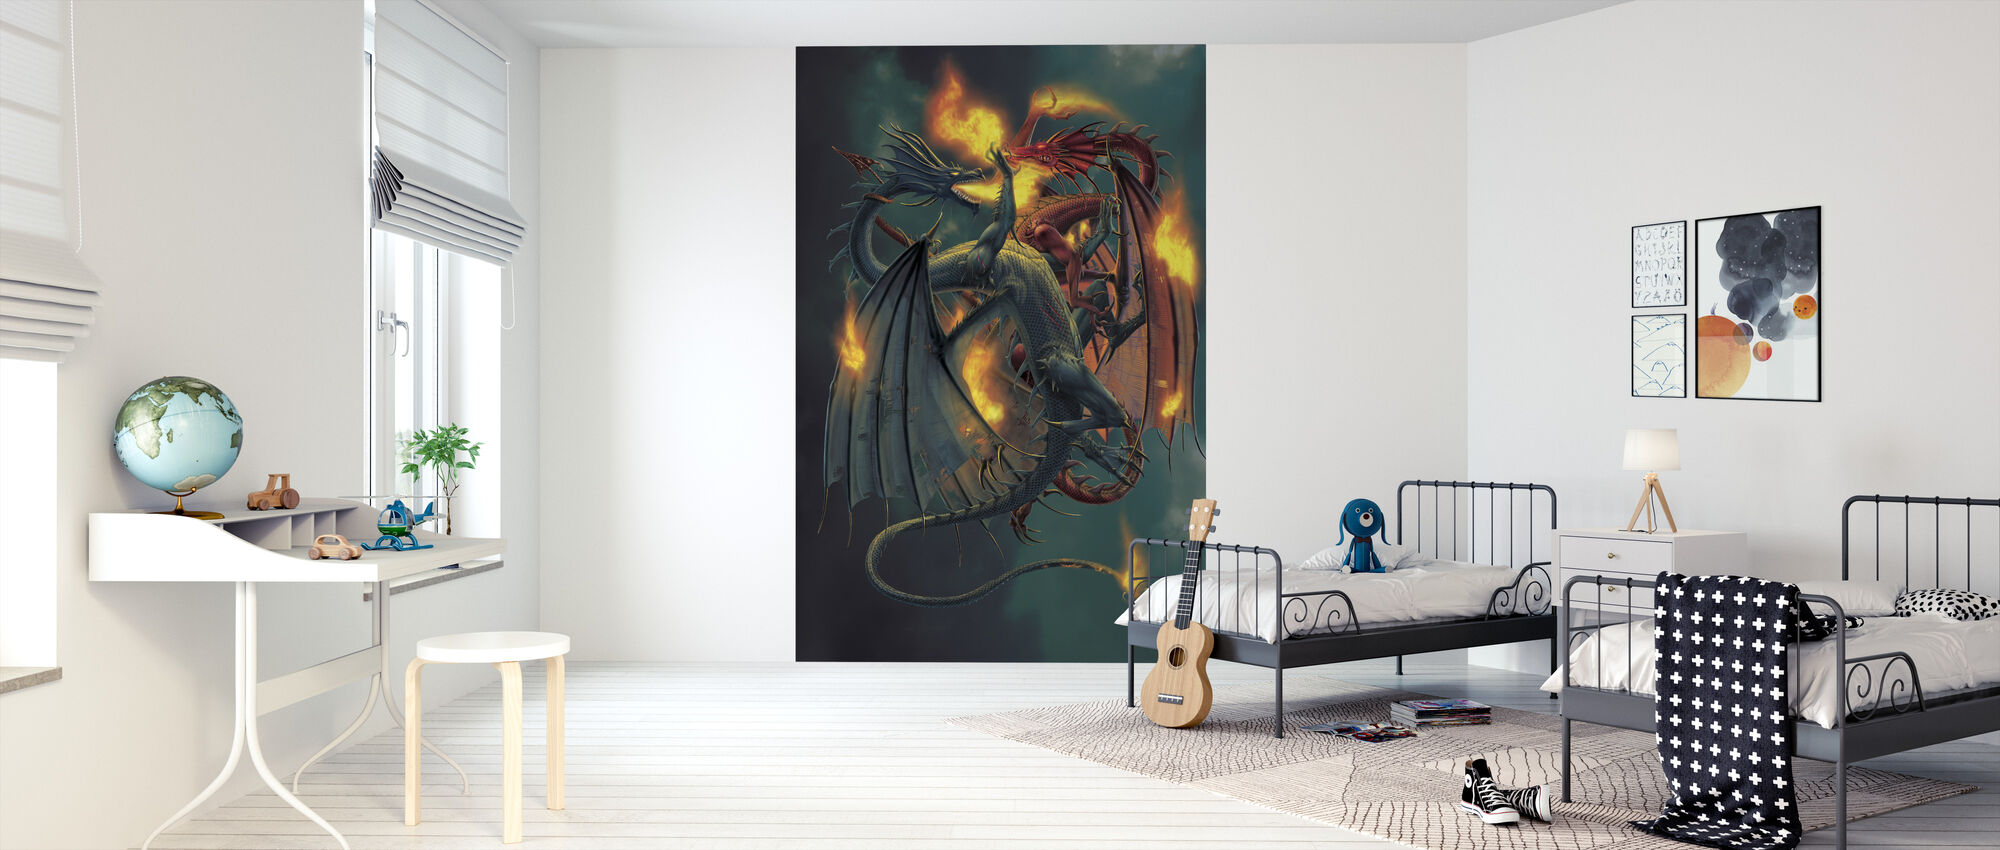 Clash of the Titans - Wallpaper - Kids Room